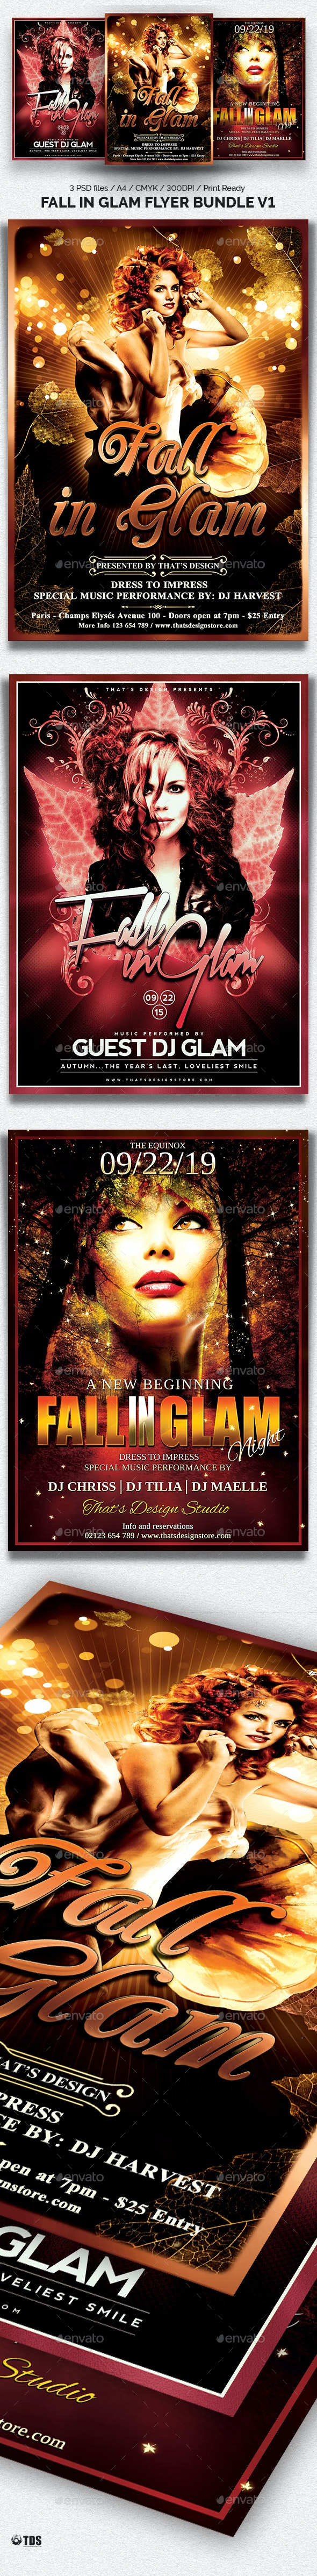 Fall in Glam Flyer Bundle V1 - Clubs & Parties Events